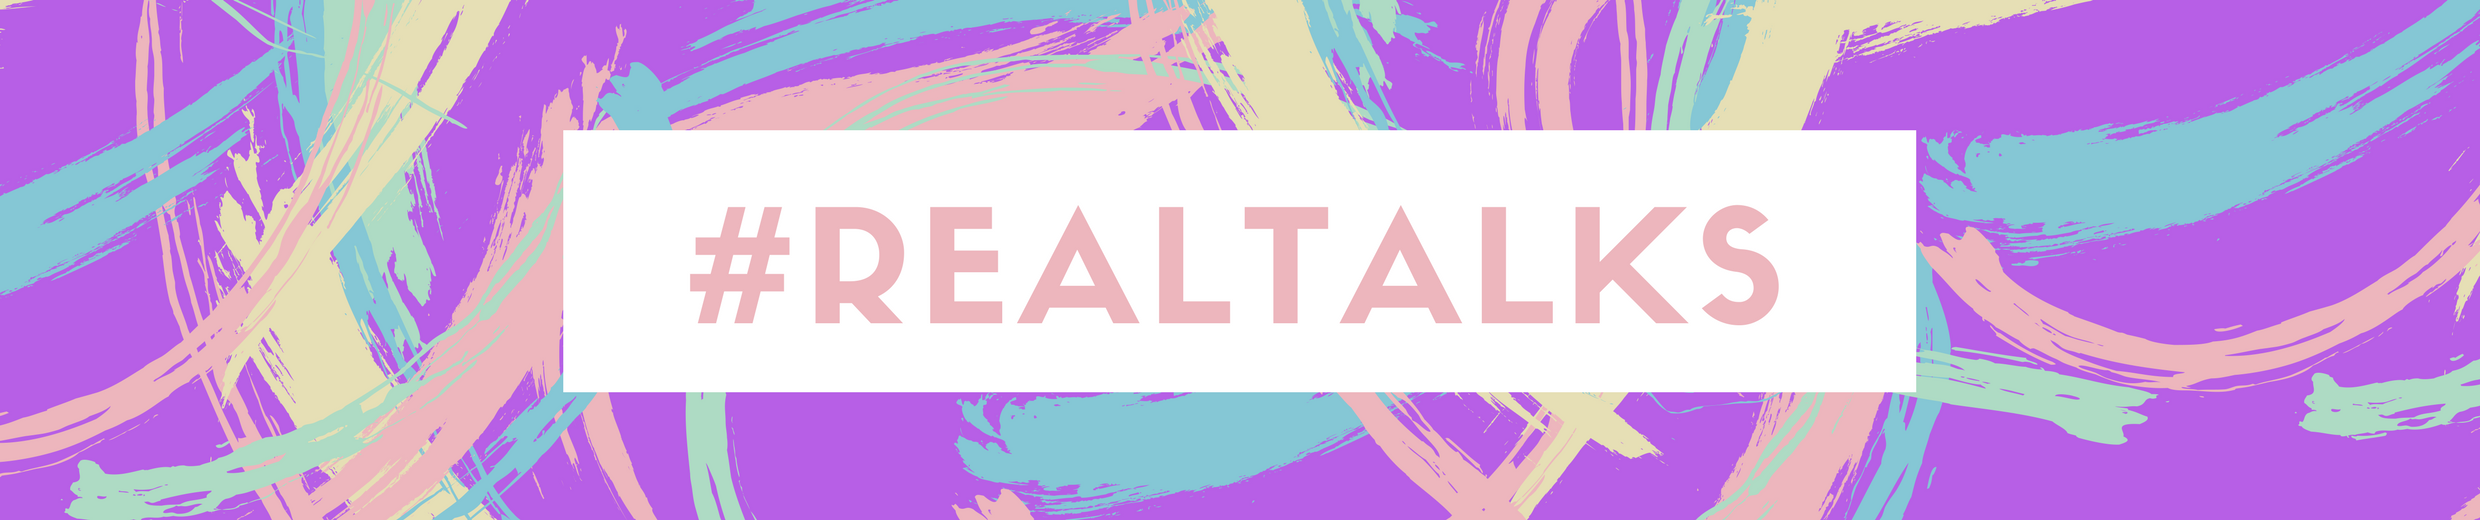 WMN : #REALTALKS - The Mix (en anglais)